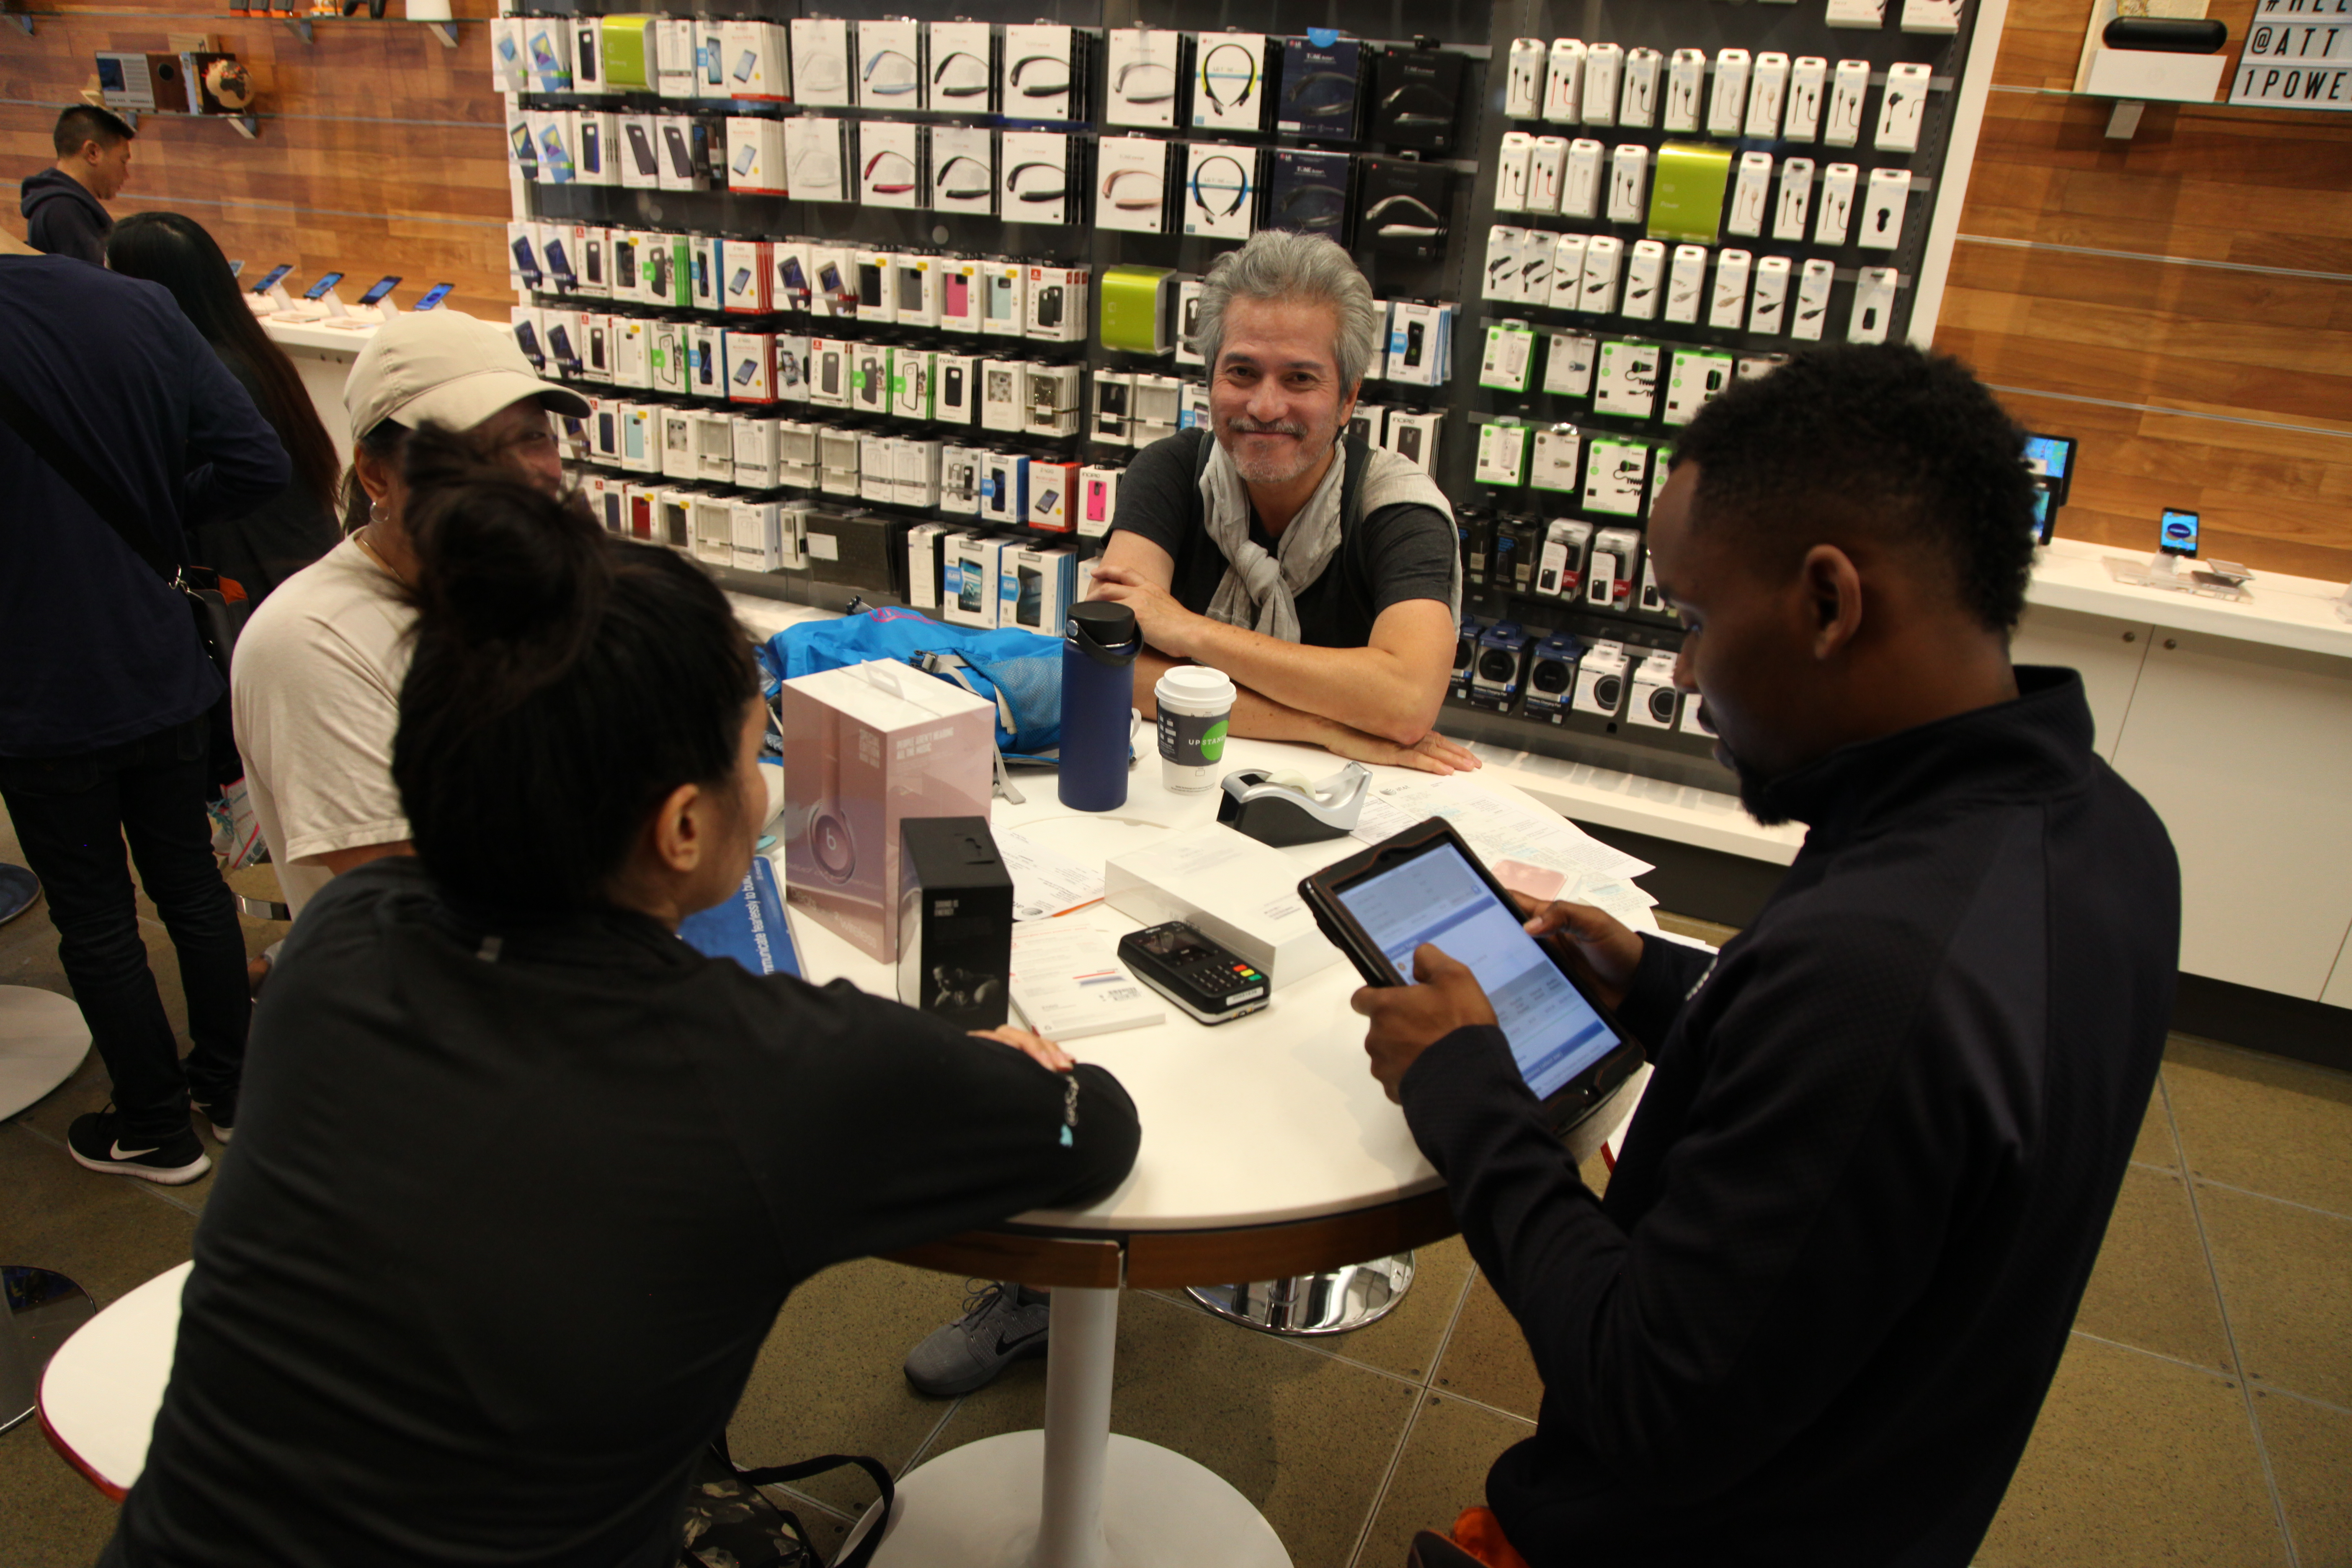 SAN FRANCISCO, CA - OCTOBER 07: An AT&T employee helps a customer set up her new device at the Grand Opening of the AT&T store at 1 Powell on October 7, 2016 in San Francisco, California. (Photo by Kelly Sullivan/Getty Images for MAC Presents)